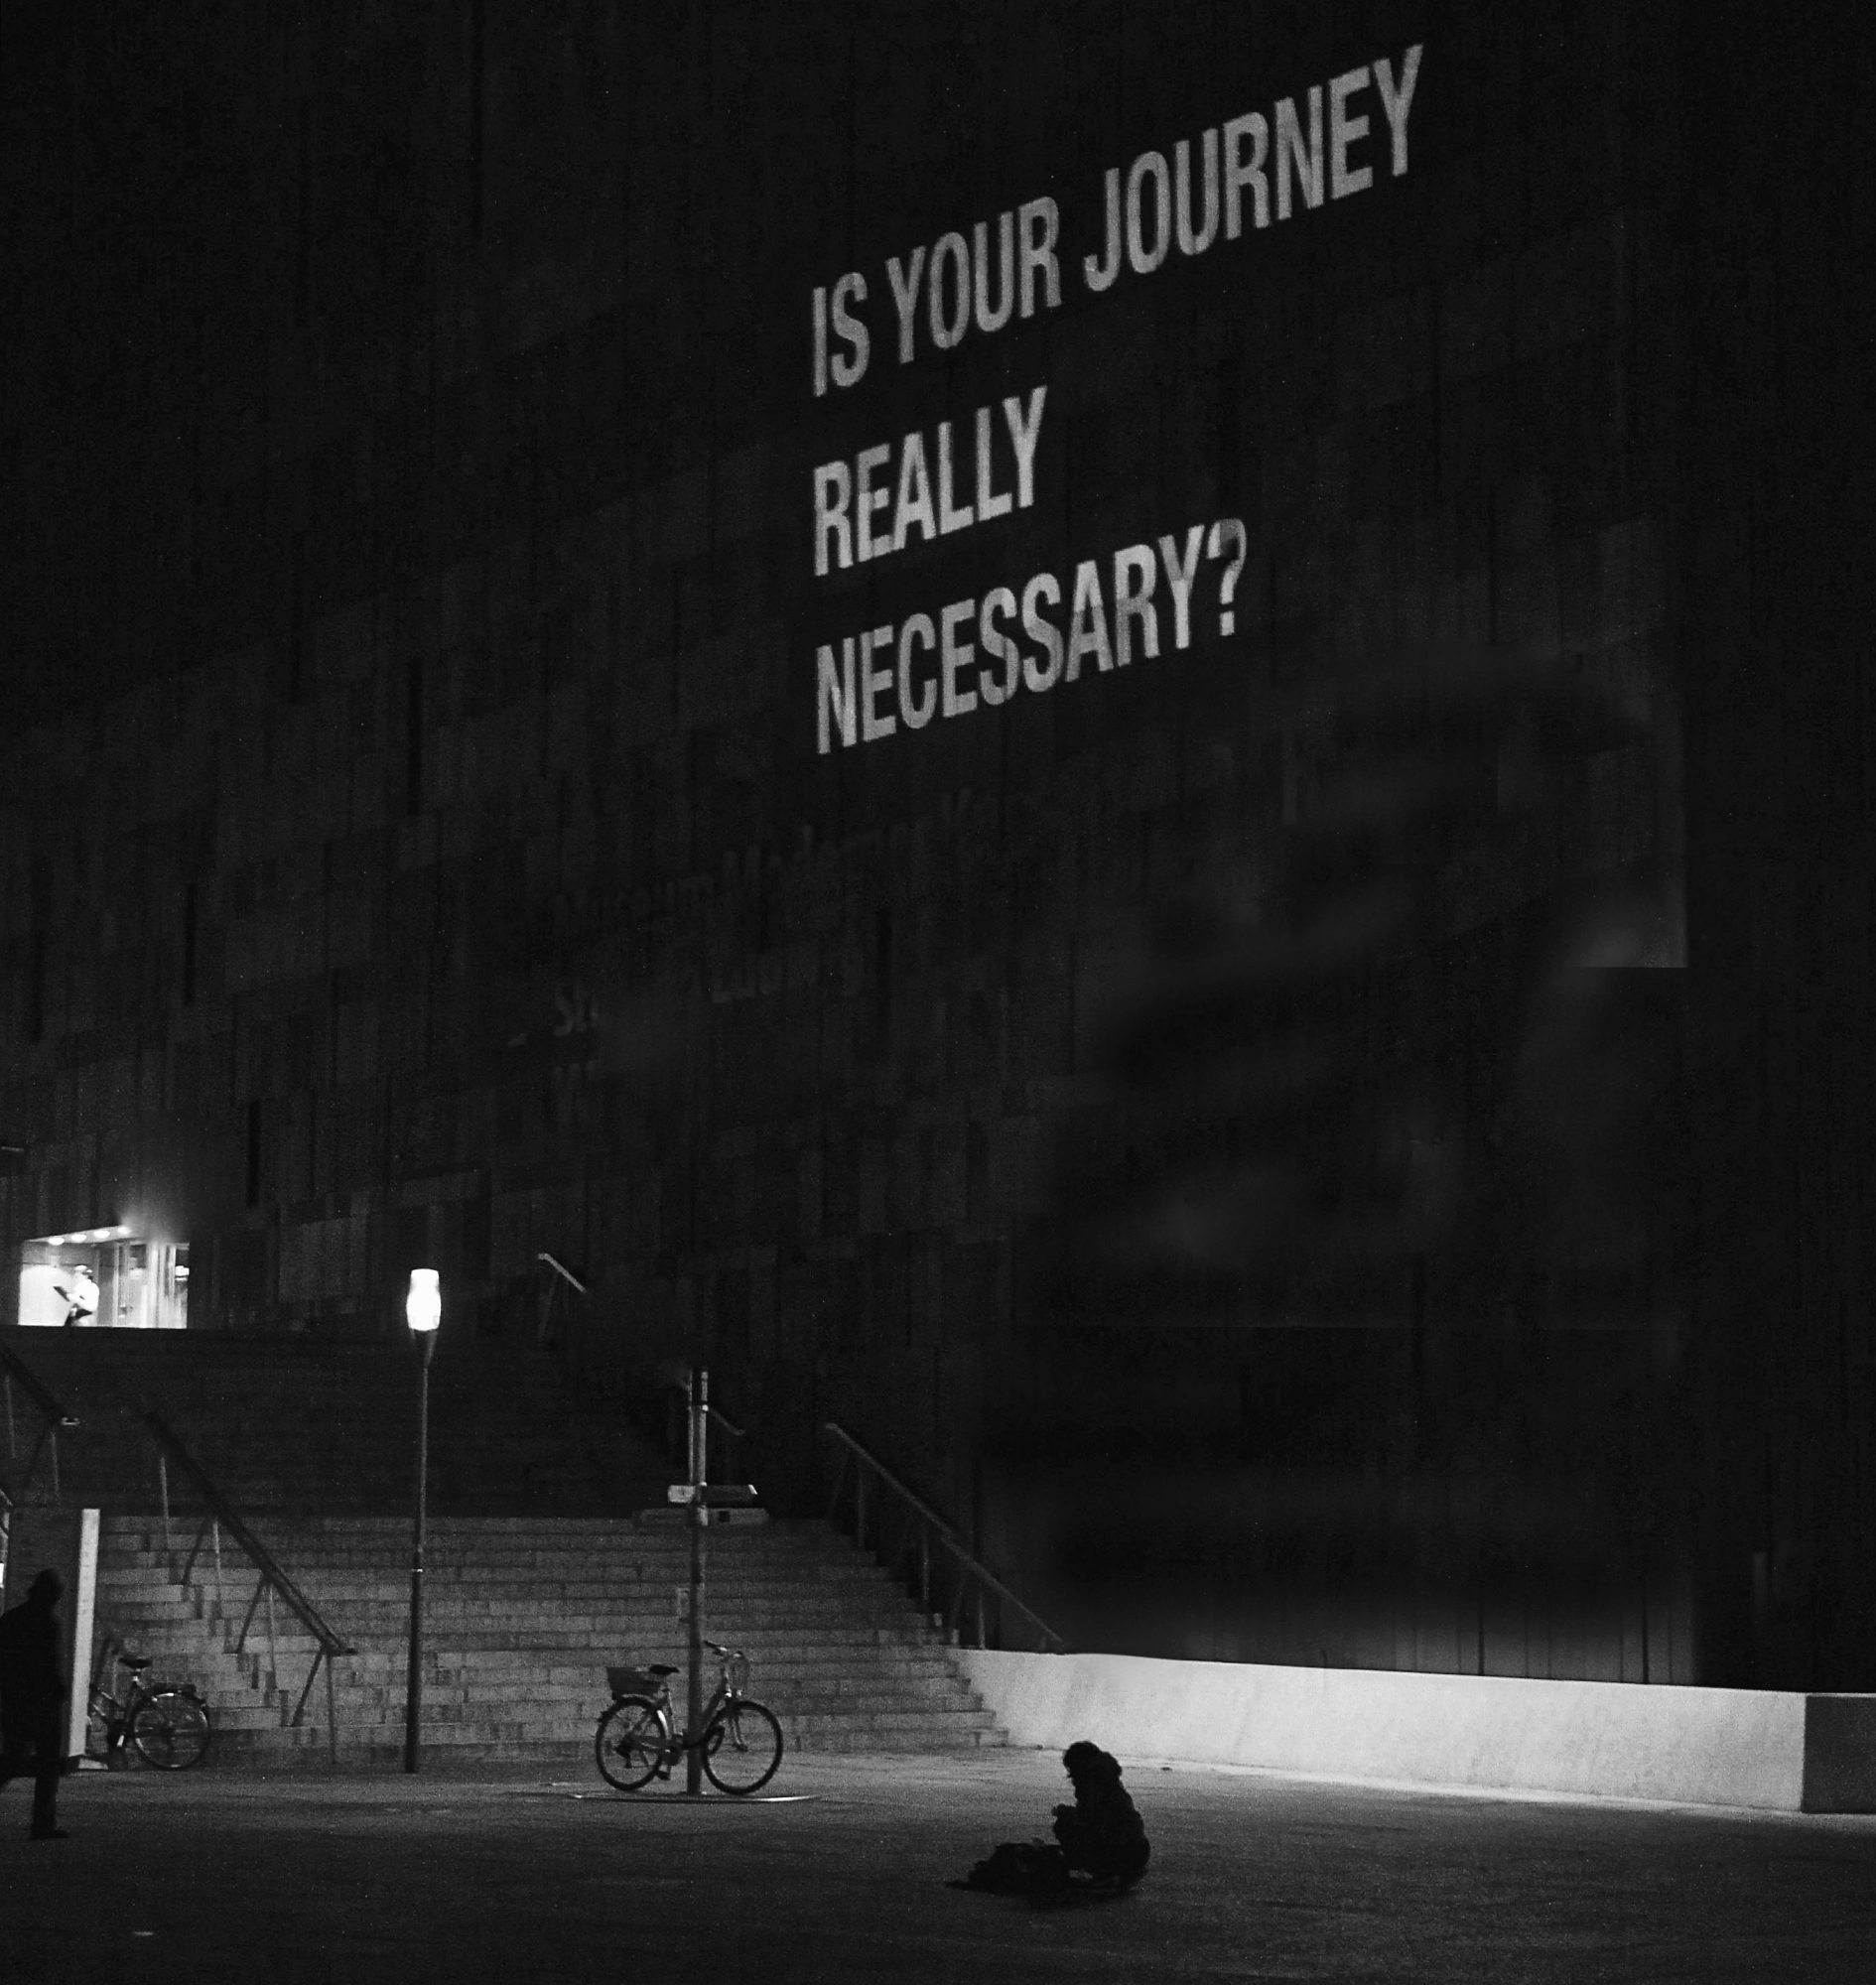 Is your journey really necessary?, 2009, Textprojektion, MUMOK Wien / Vienna